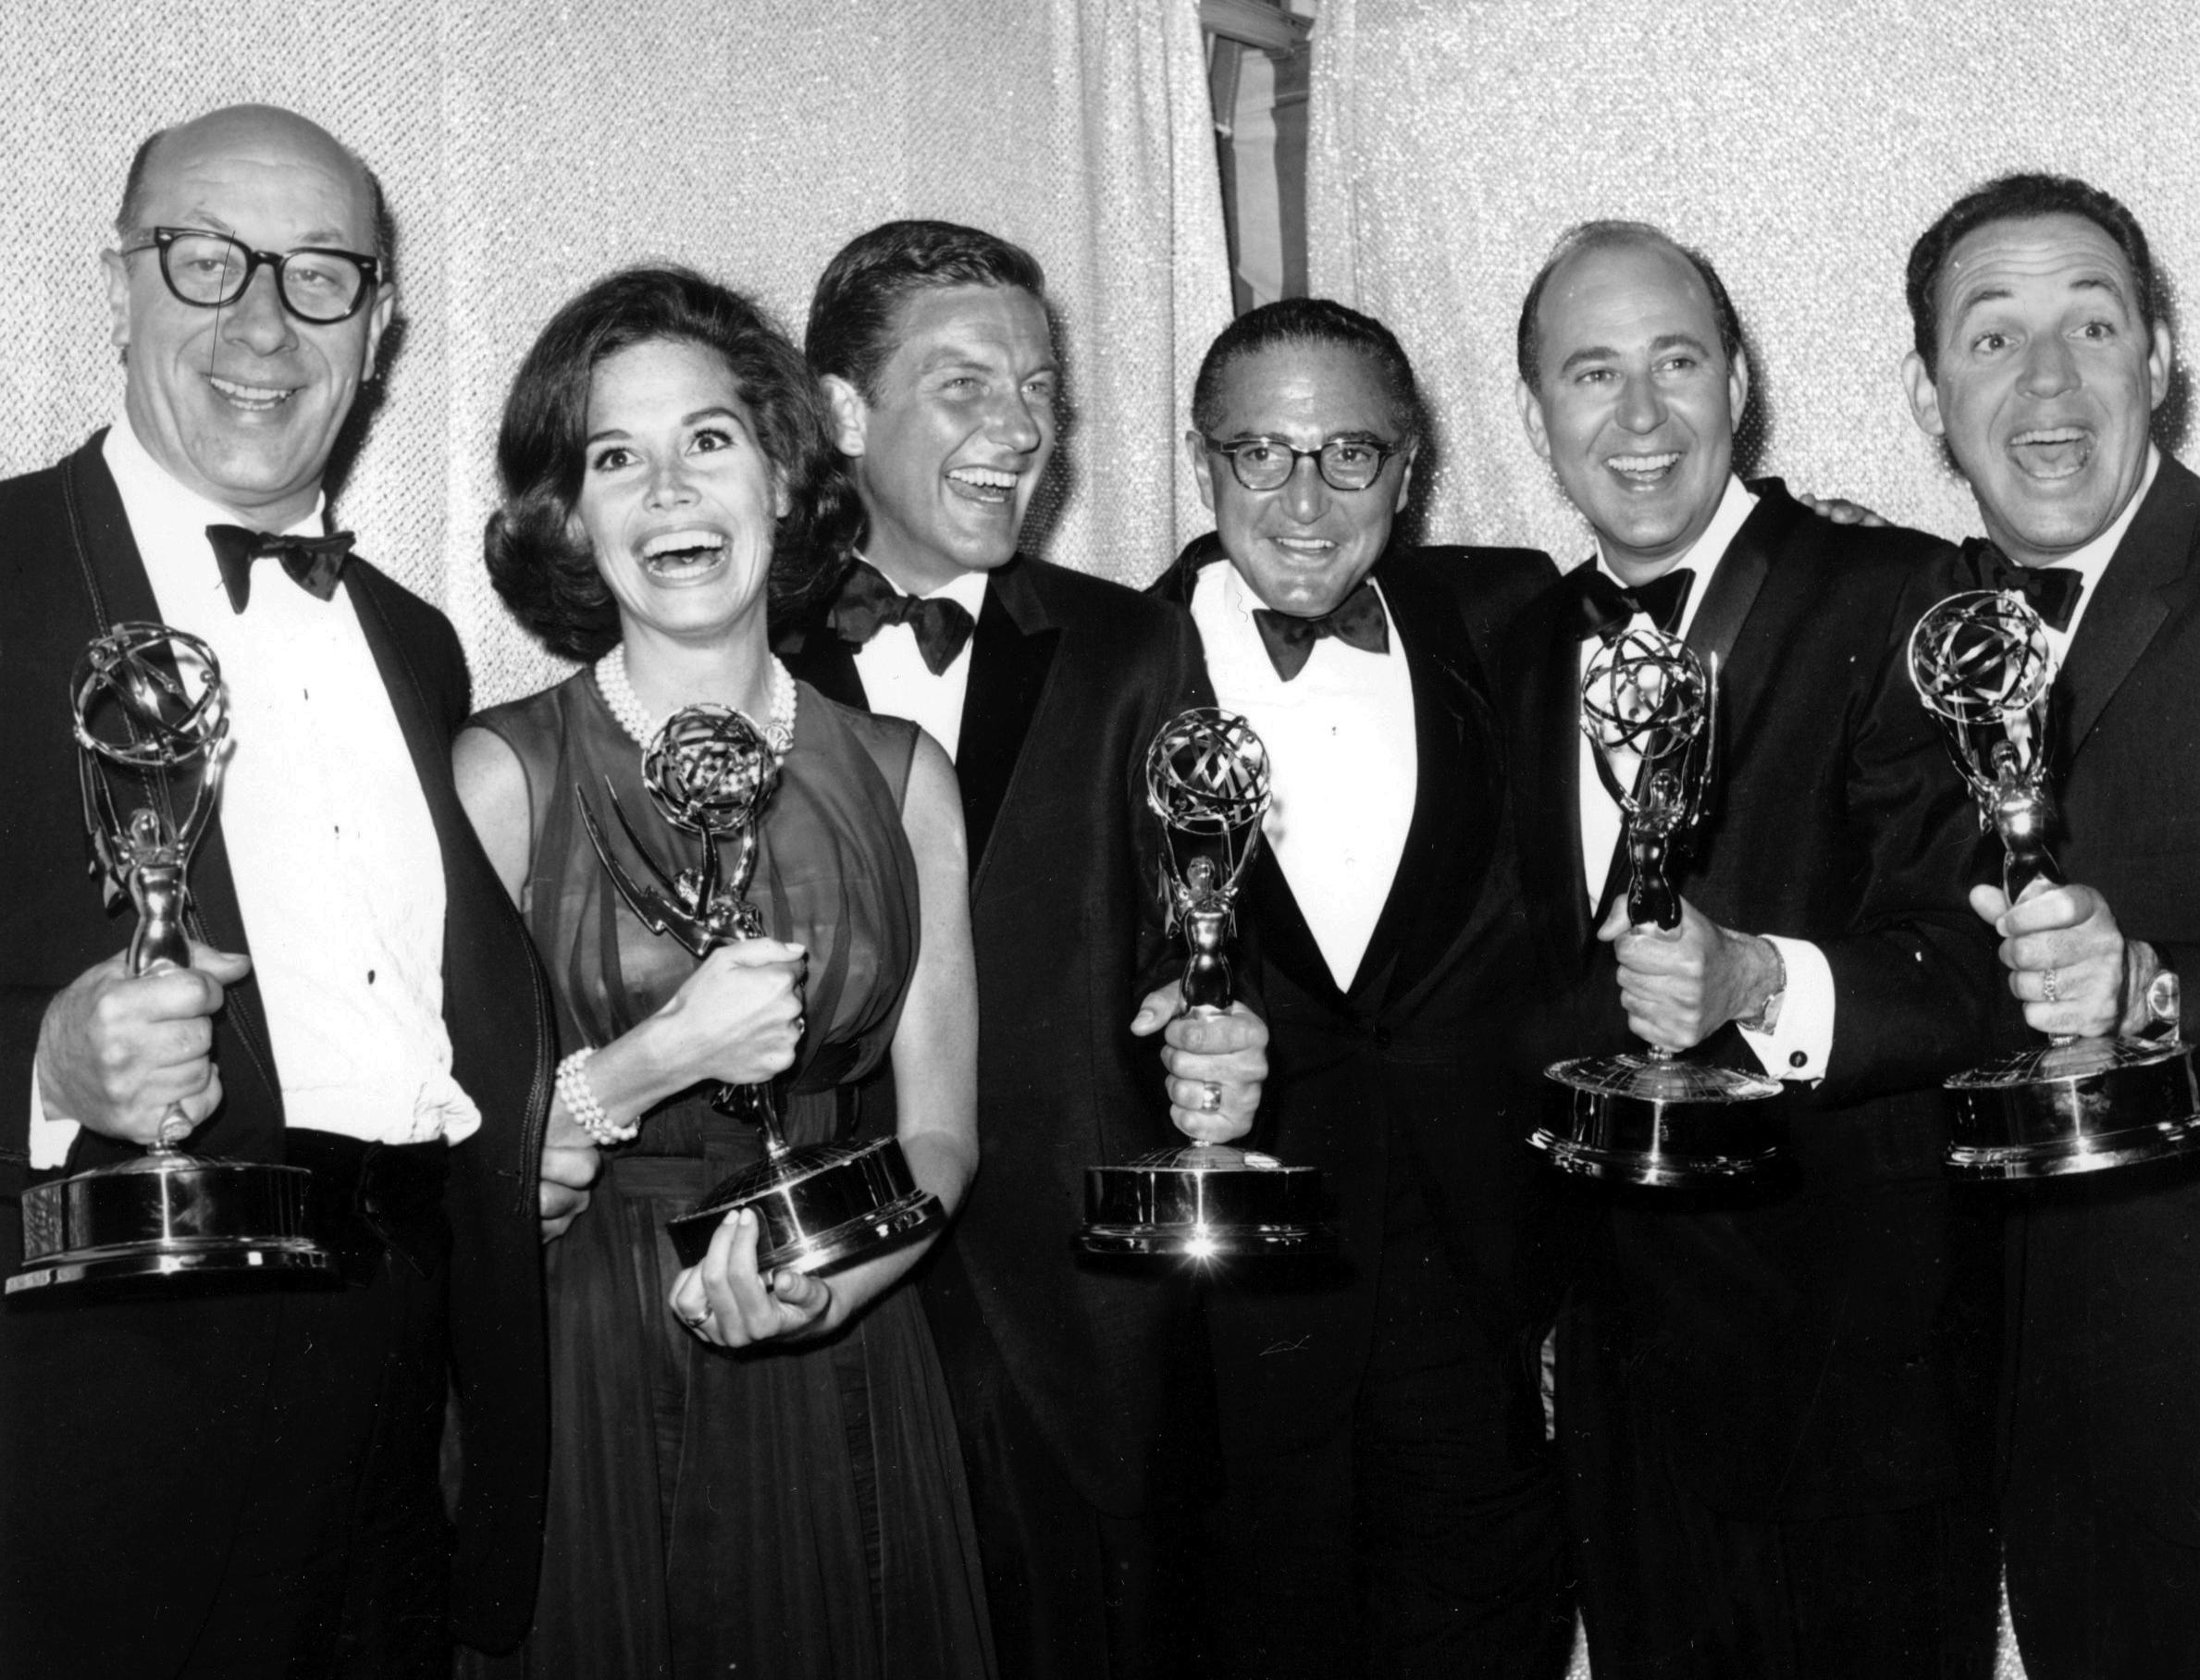 """FILE - In this May 24, 1964 file photo, cast and crew of the television comedy series """"The Dick Van Dyke Show"""" from left, Richard Deacon, Mary Tyler Moore, Outstanding Continued Performance by an Actress in a Series, Lead; Dick Van Dyke, Outstanding Continued Performance by an Actor in a Series, Lead; Sheldon Leonard, producer of the show, which was named best comedy series; Carl Reiner, Outstanding Writing Achievement in a Series; and Jerry Paris, Outstanding Directorial Achievement in Comedy. pose with their awards at the 16th Annual Emmy Awards in Los Angeles. Variety reported that Reiner died of natural causes on Monday night, June 29, 2020, at his home in Beverly Hills, Calif. He was 98. (AP Photo, File)"""